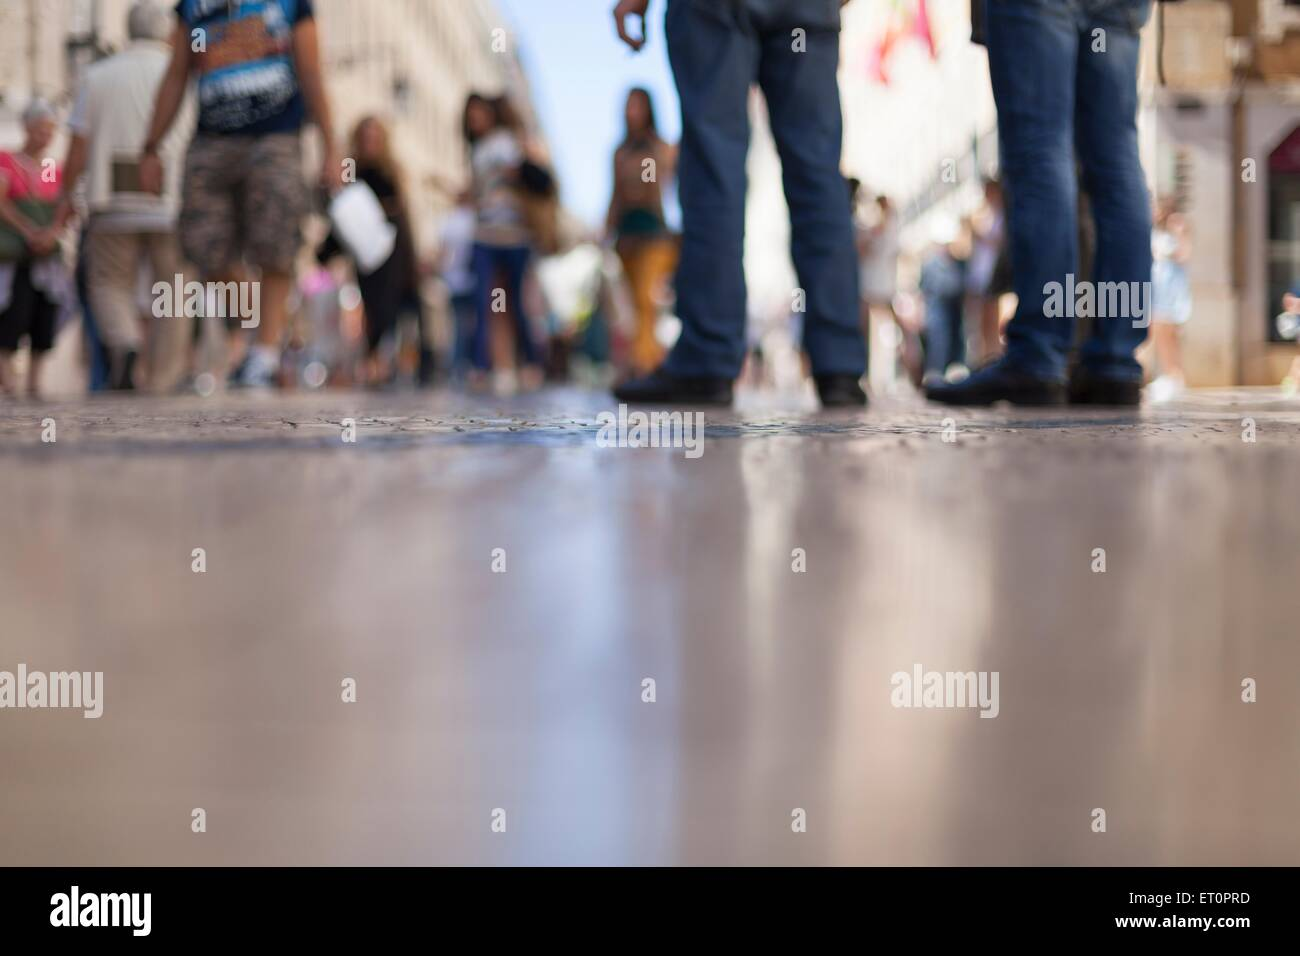 Blurry image of people on the street, ground view - Stock Image